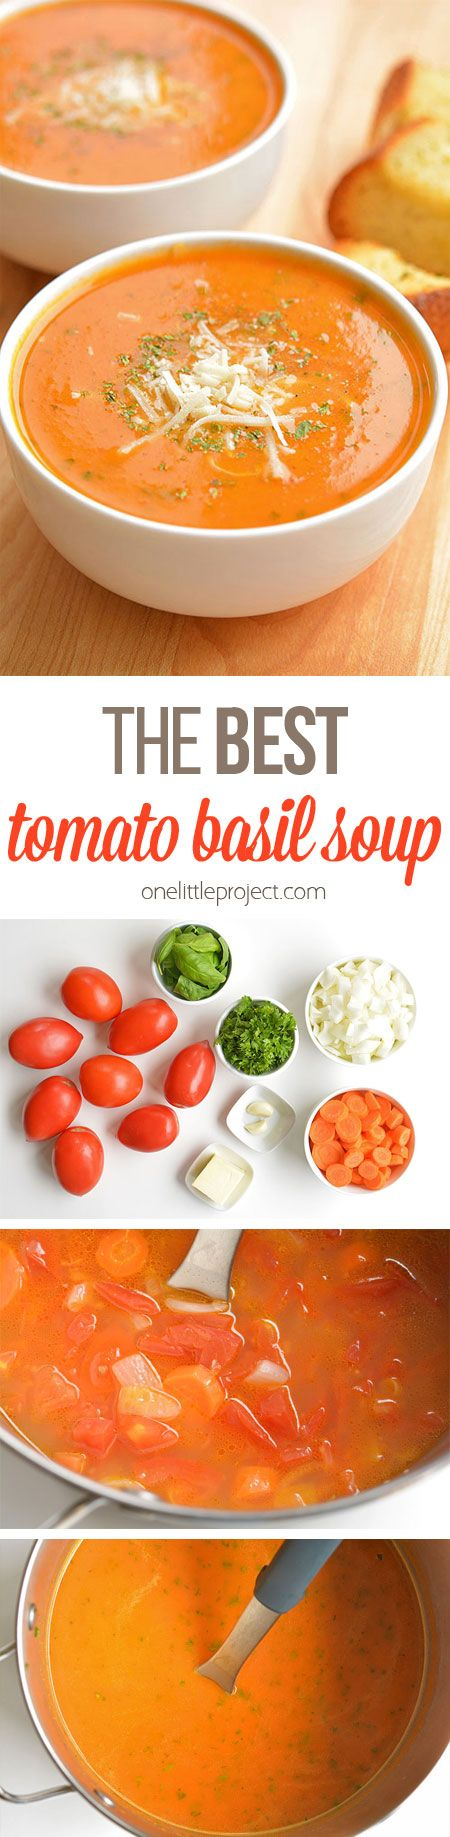 This tomato basil soup is one of my all time FAVOURITE soup recipes! It's easy to make and always tastes amazing! Serve it hot with fresh garlic bread and Mmmm... It's the perfect soup for a summer meal!